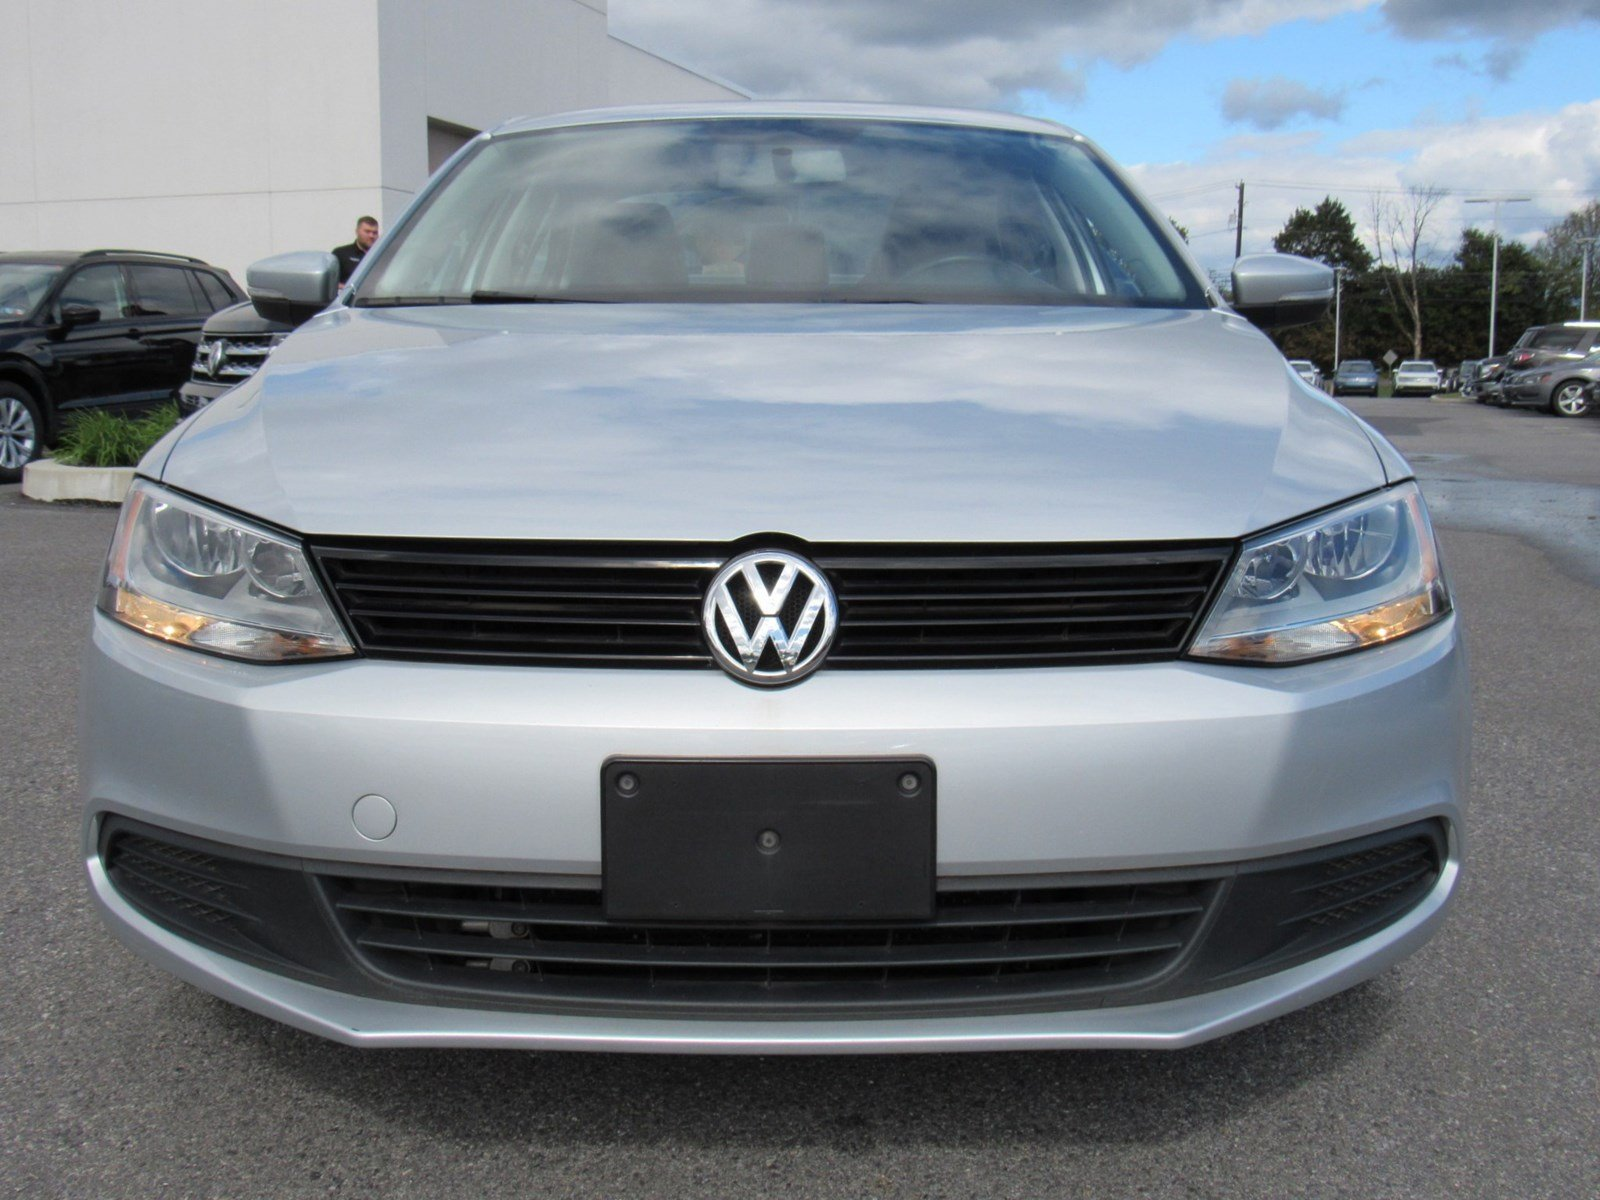 Certified Pre-Owned 2012 Volkswagen Jetta Sedan TDI